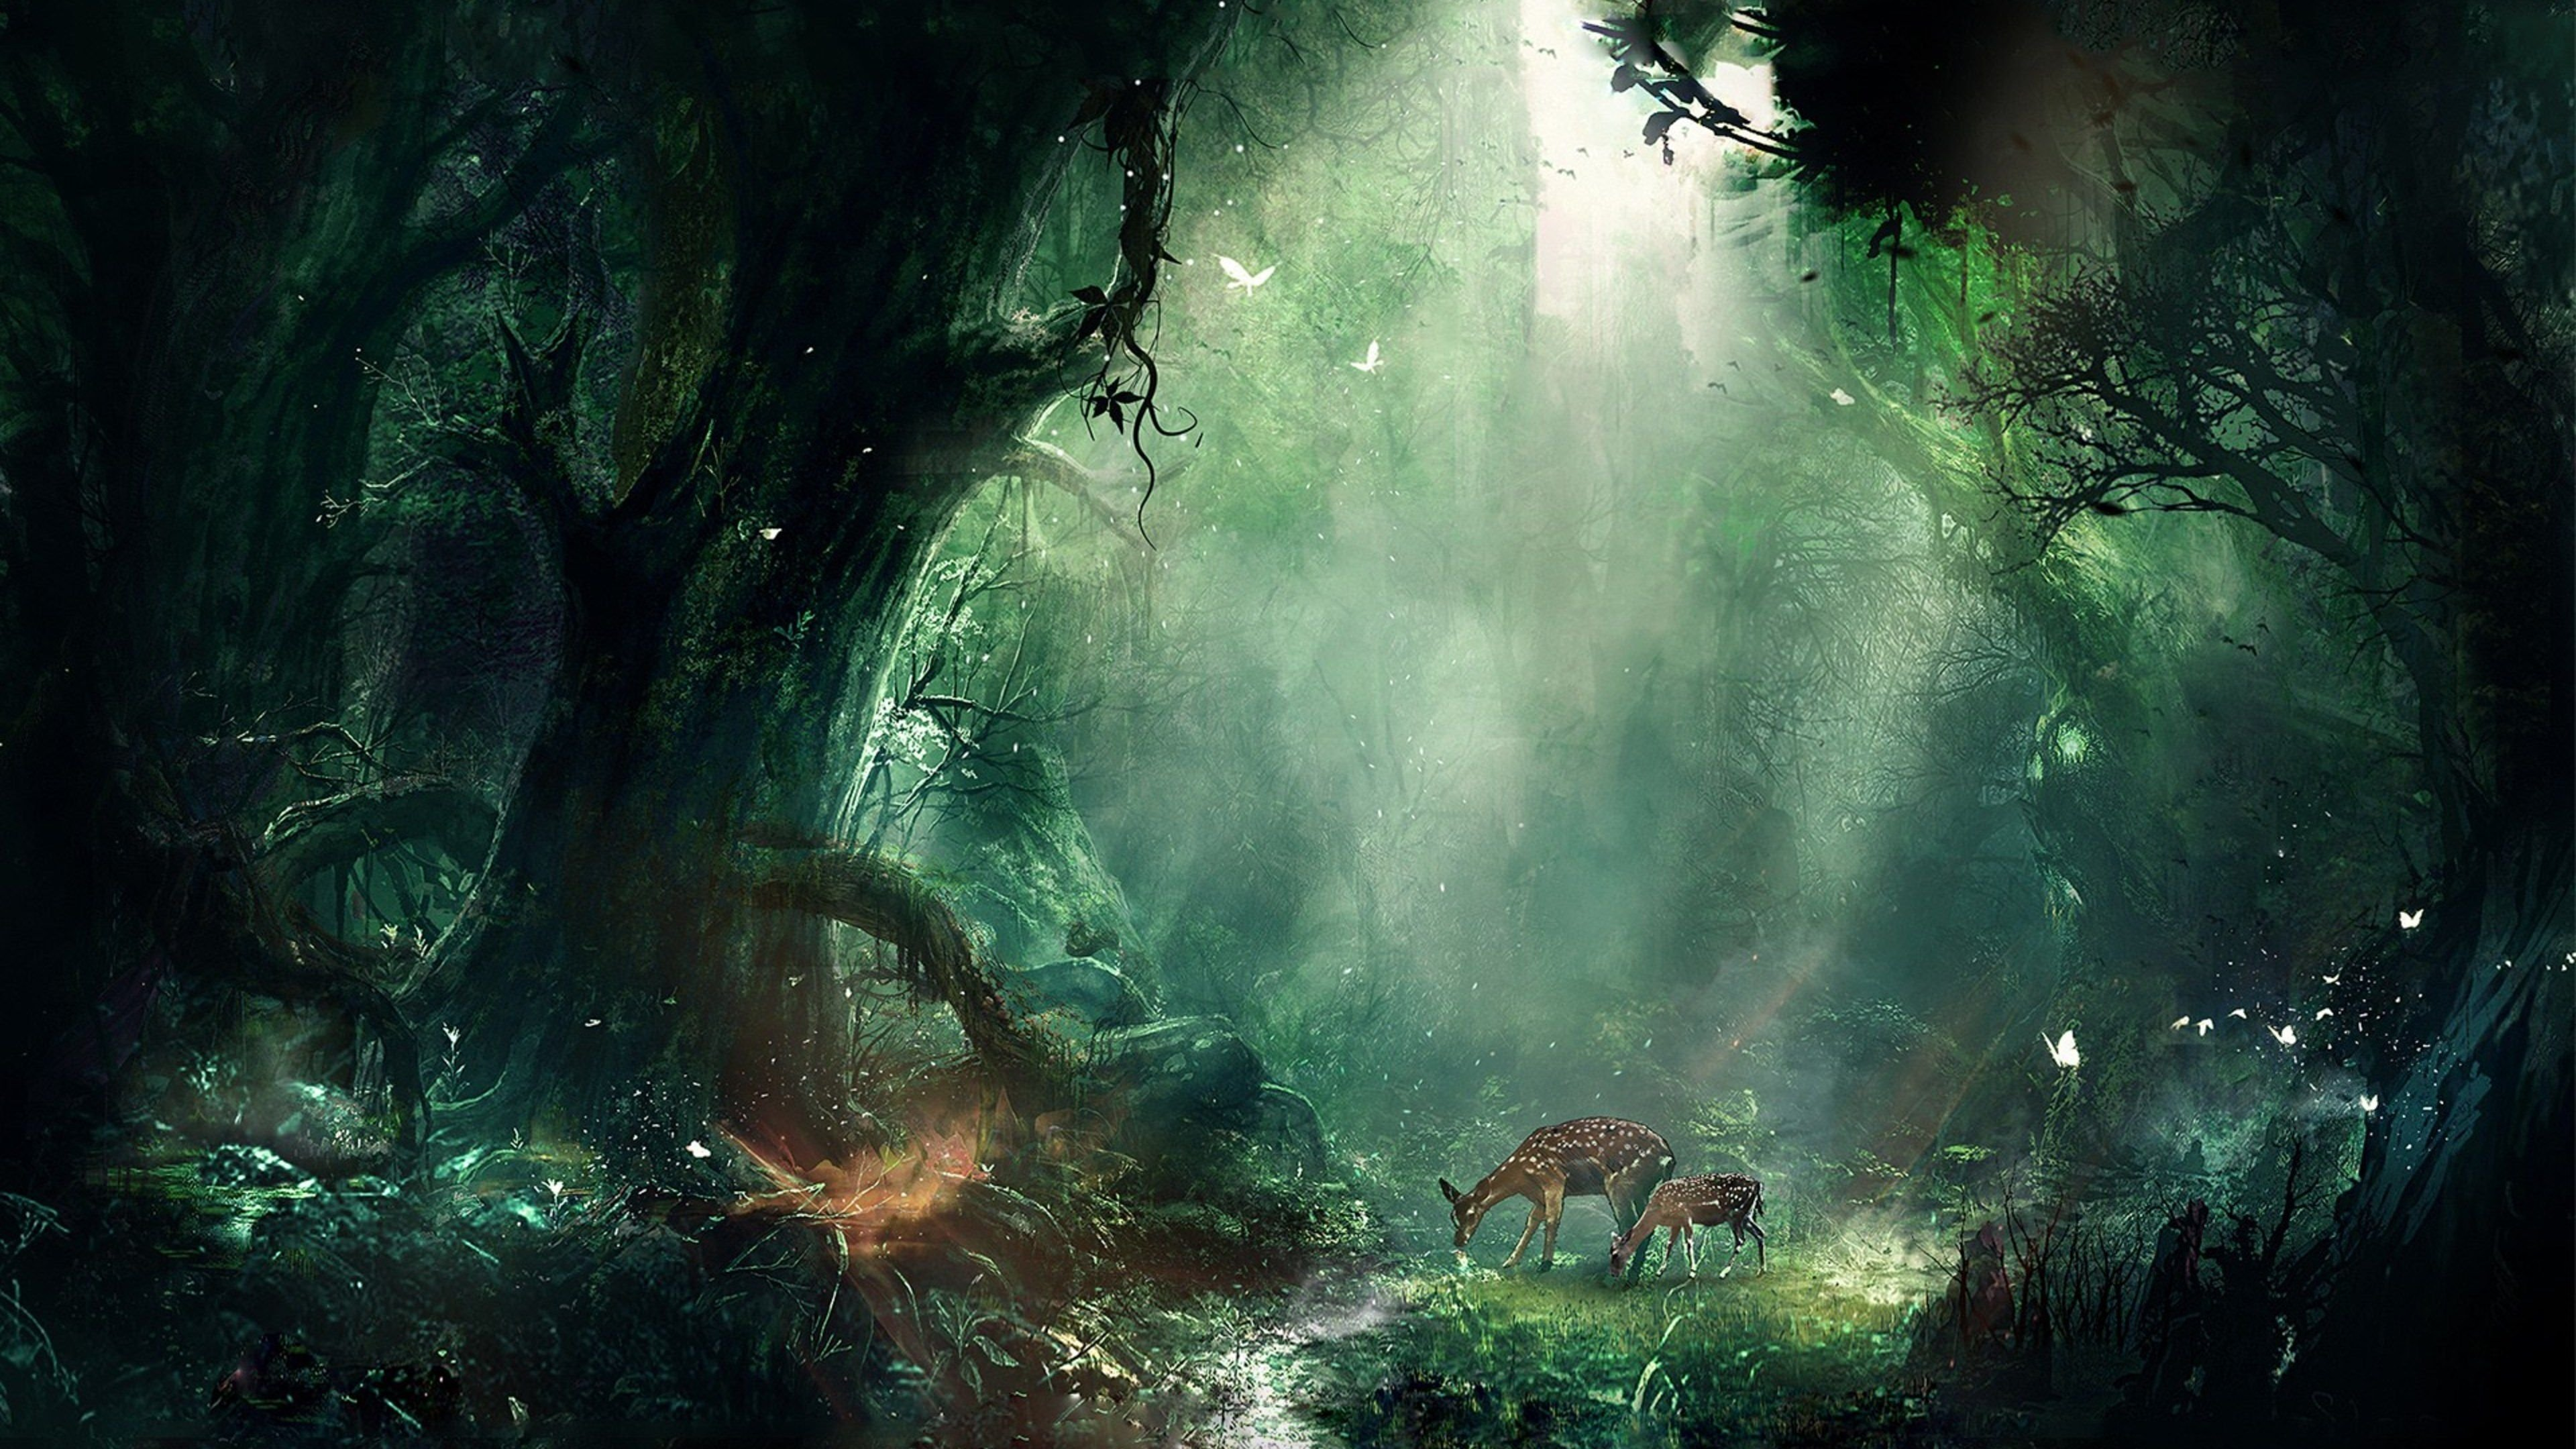 Jungle Wallpapers Posted By Ryan Anderson